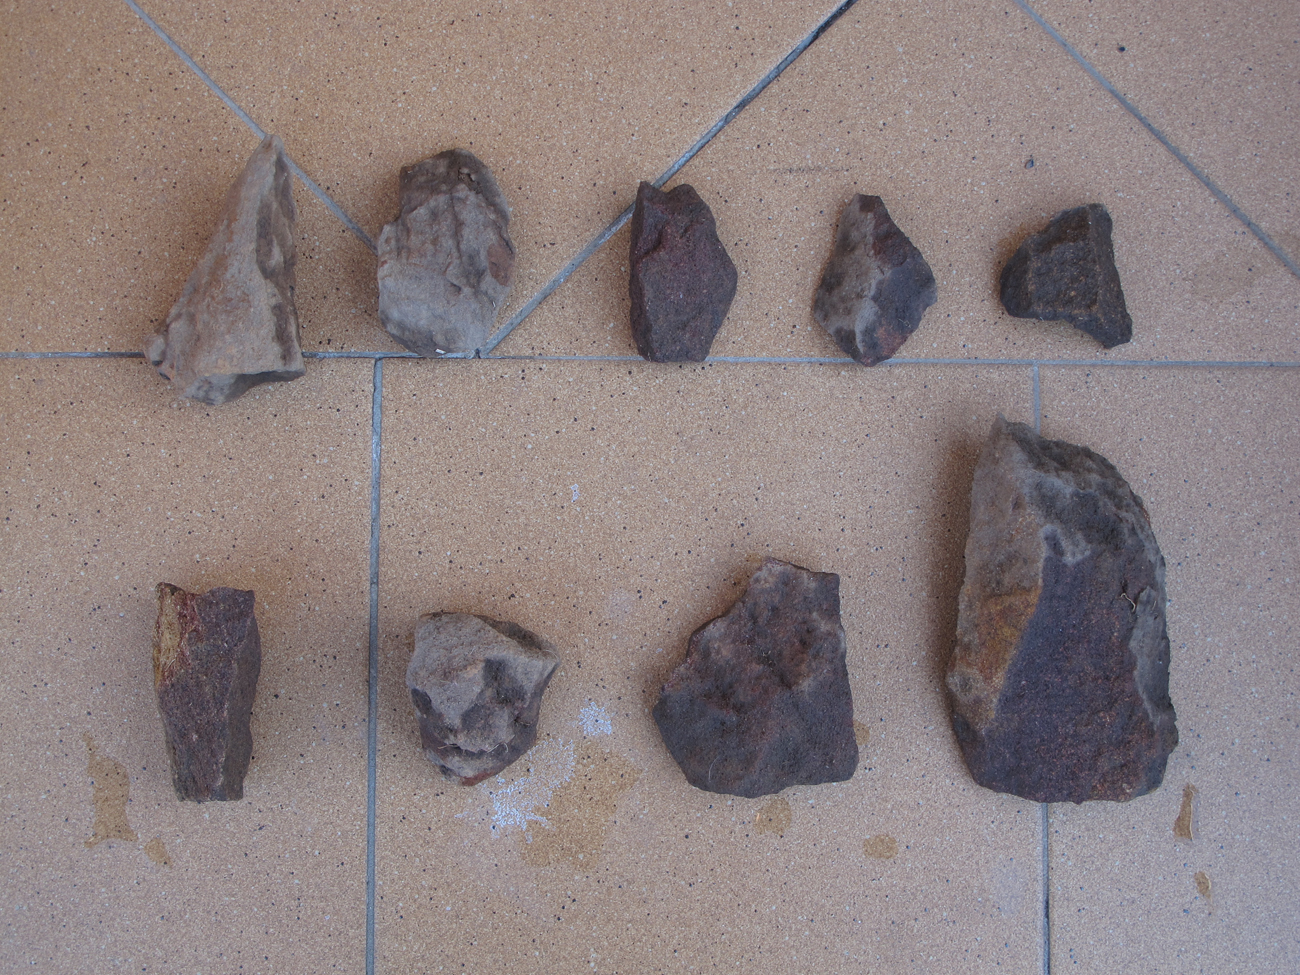 collection of sandstone fragments dug up from veggie patch